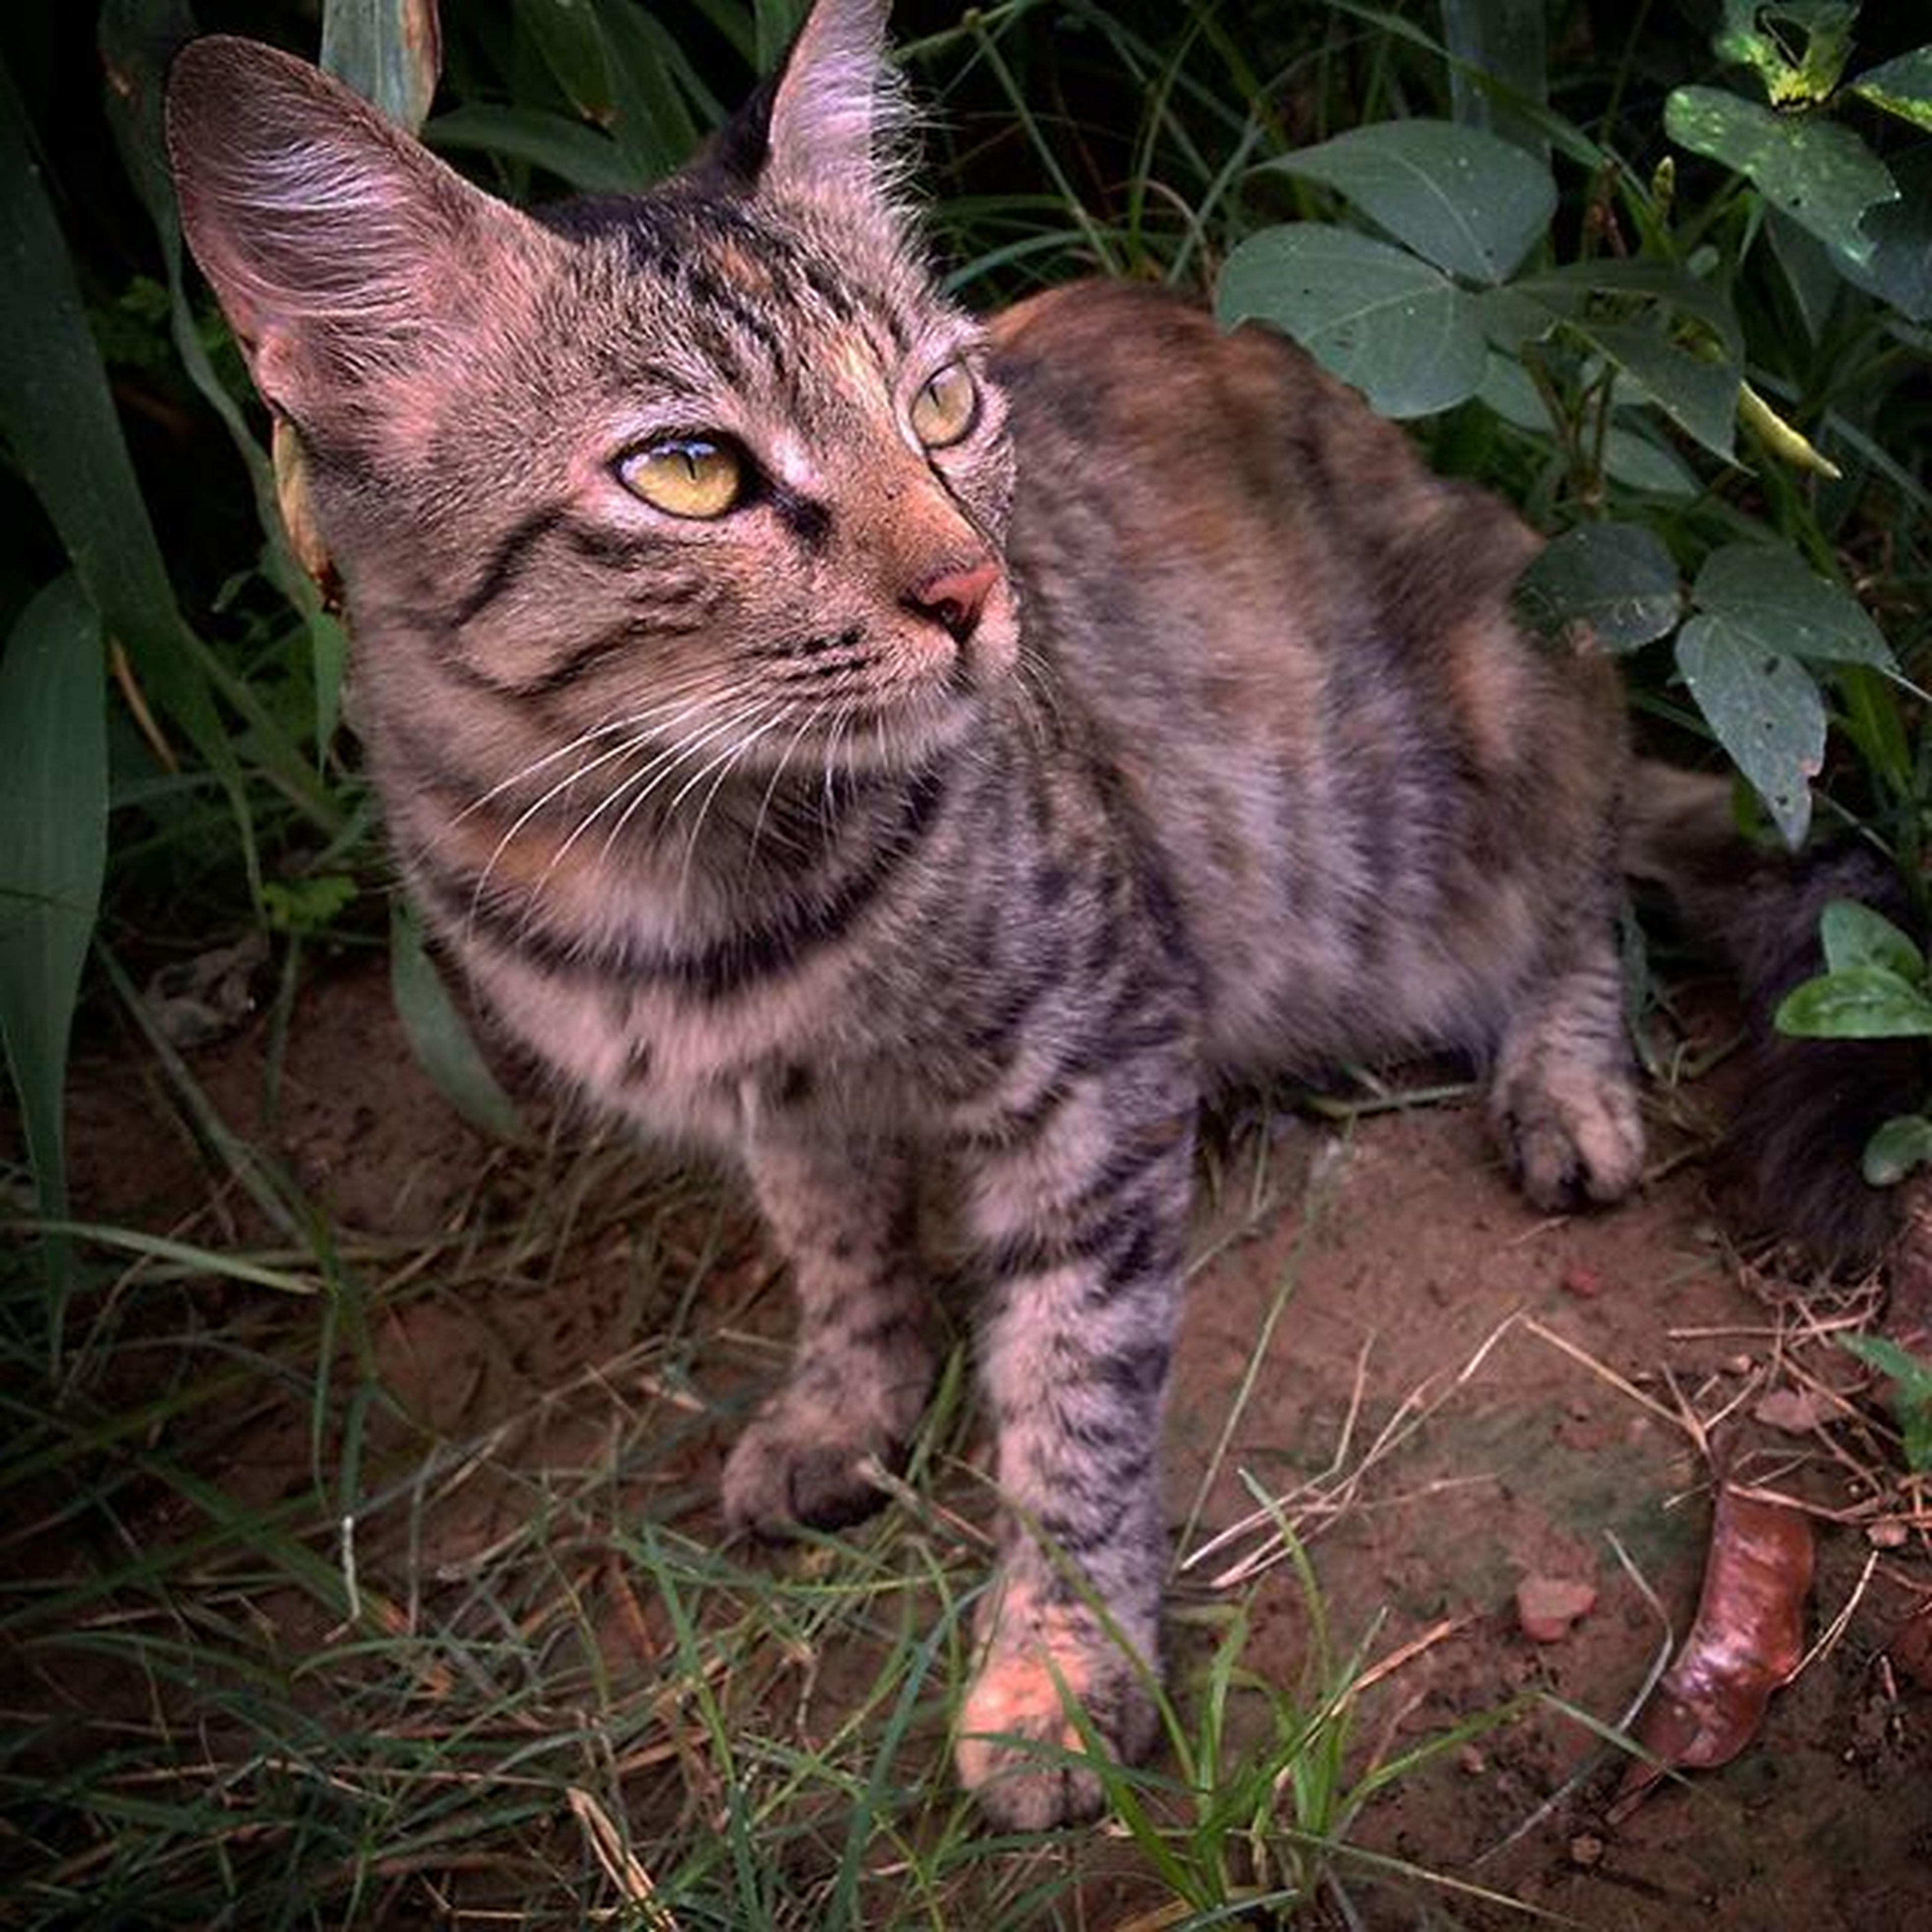 domestic cat, pets, domestic animals, cat, one animal, animal themes, mammal, feline, whisker, grass, portrait, looking at camera, alertness, close-up, sitting, field, high angle view, no people, relaxation